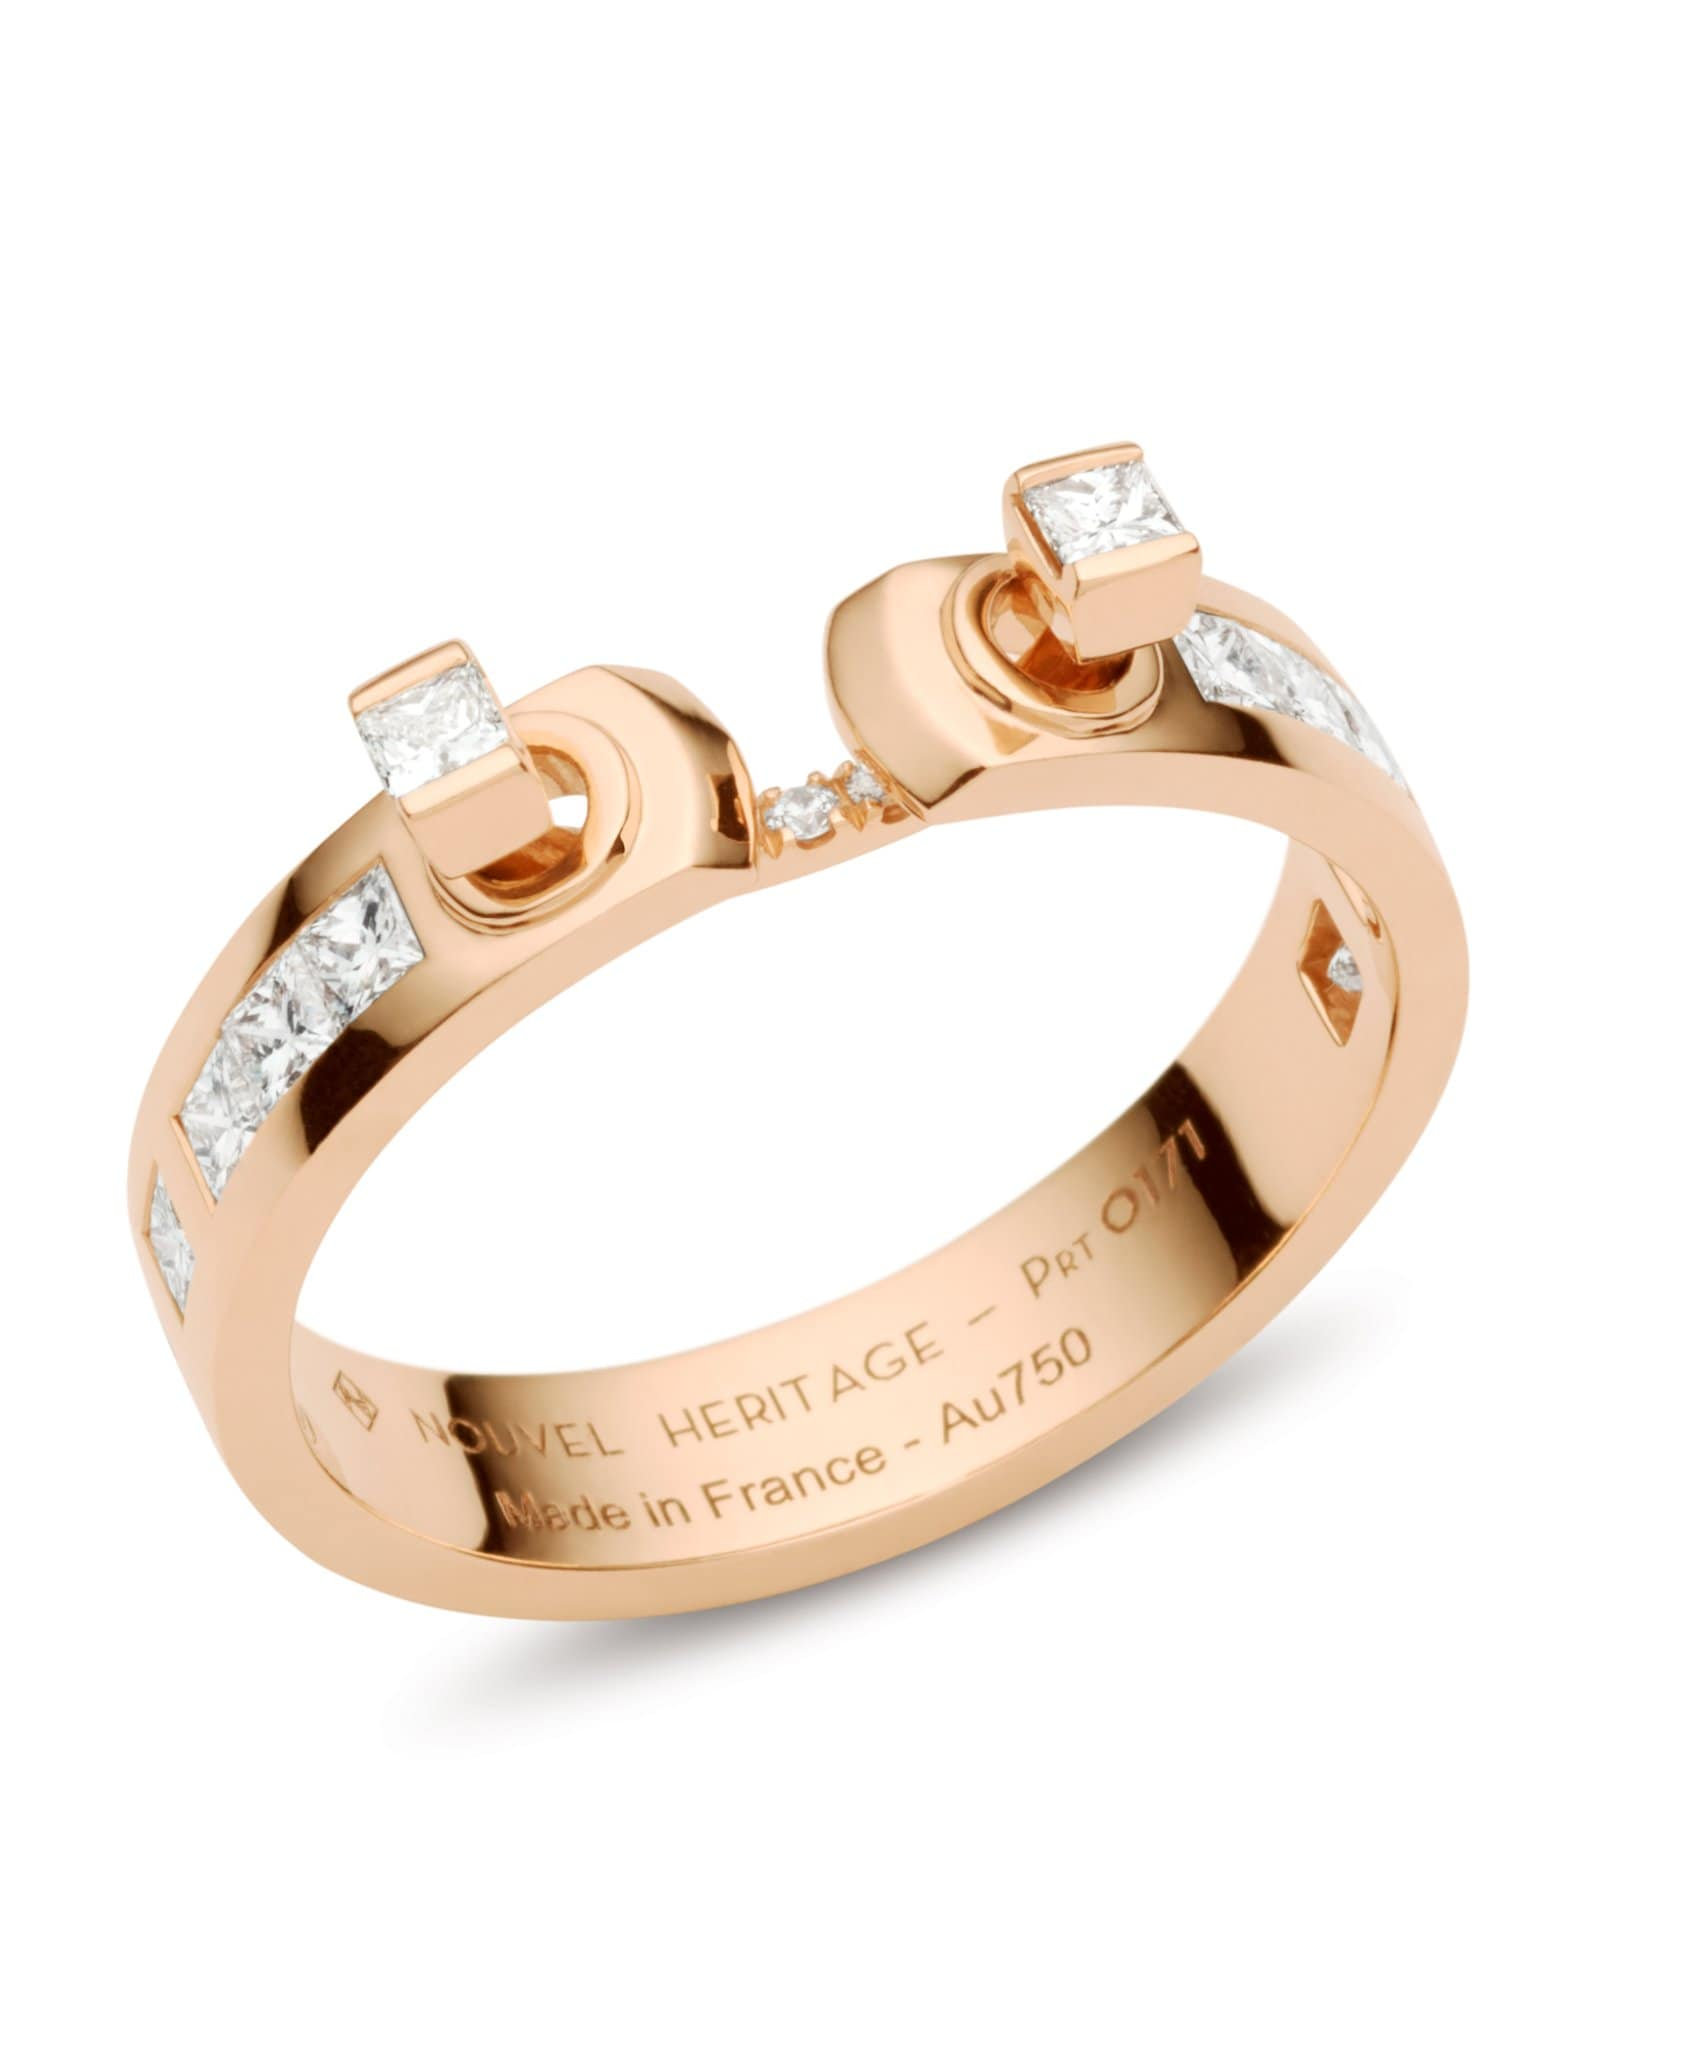 My Best Friend's Wedding Mood Ring: Discover Luxury Fine Jewelry | Nouvel Heritage